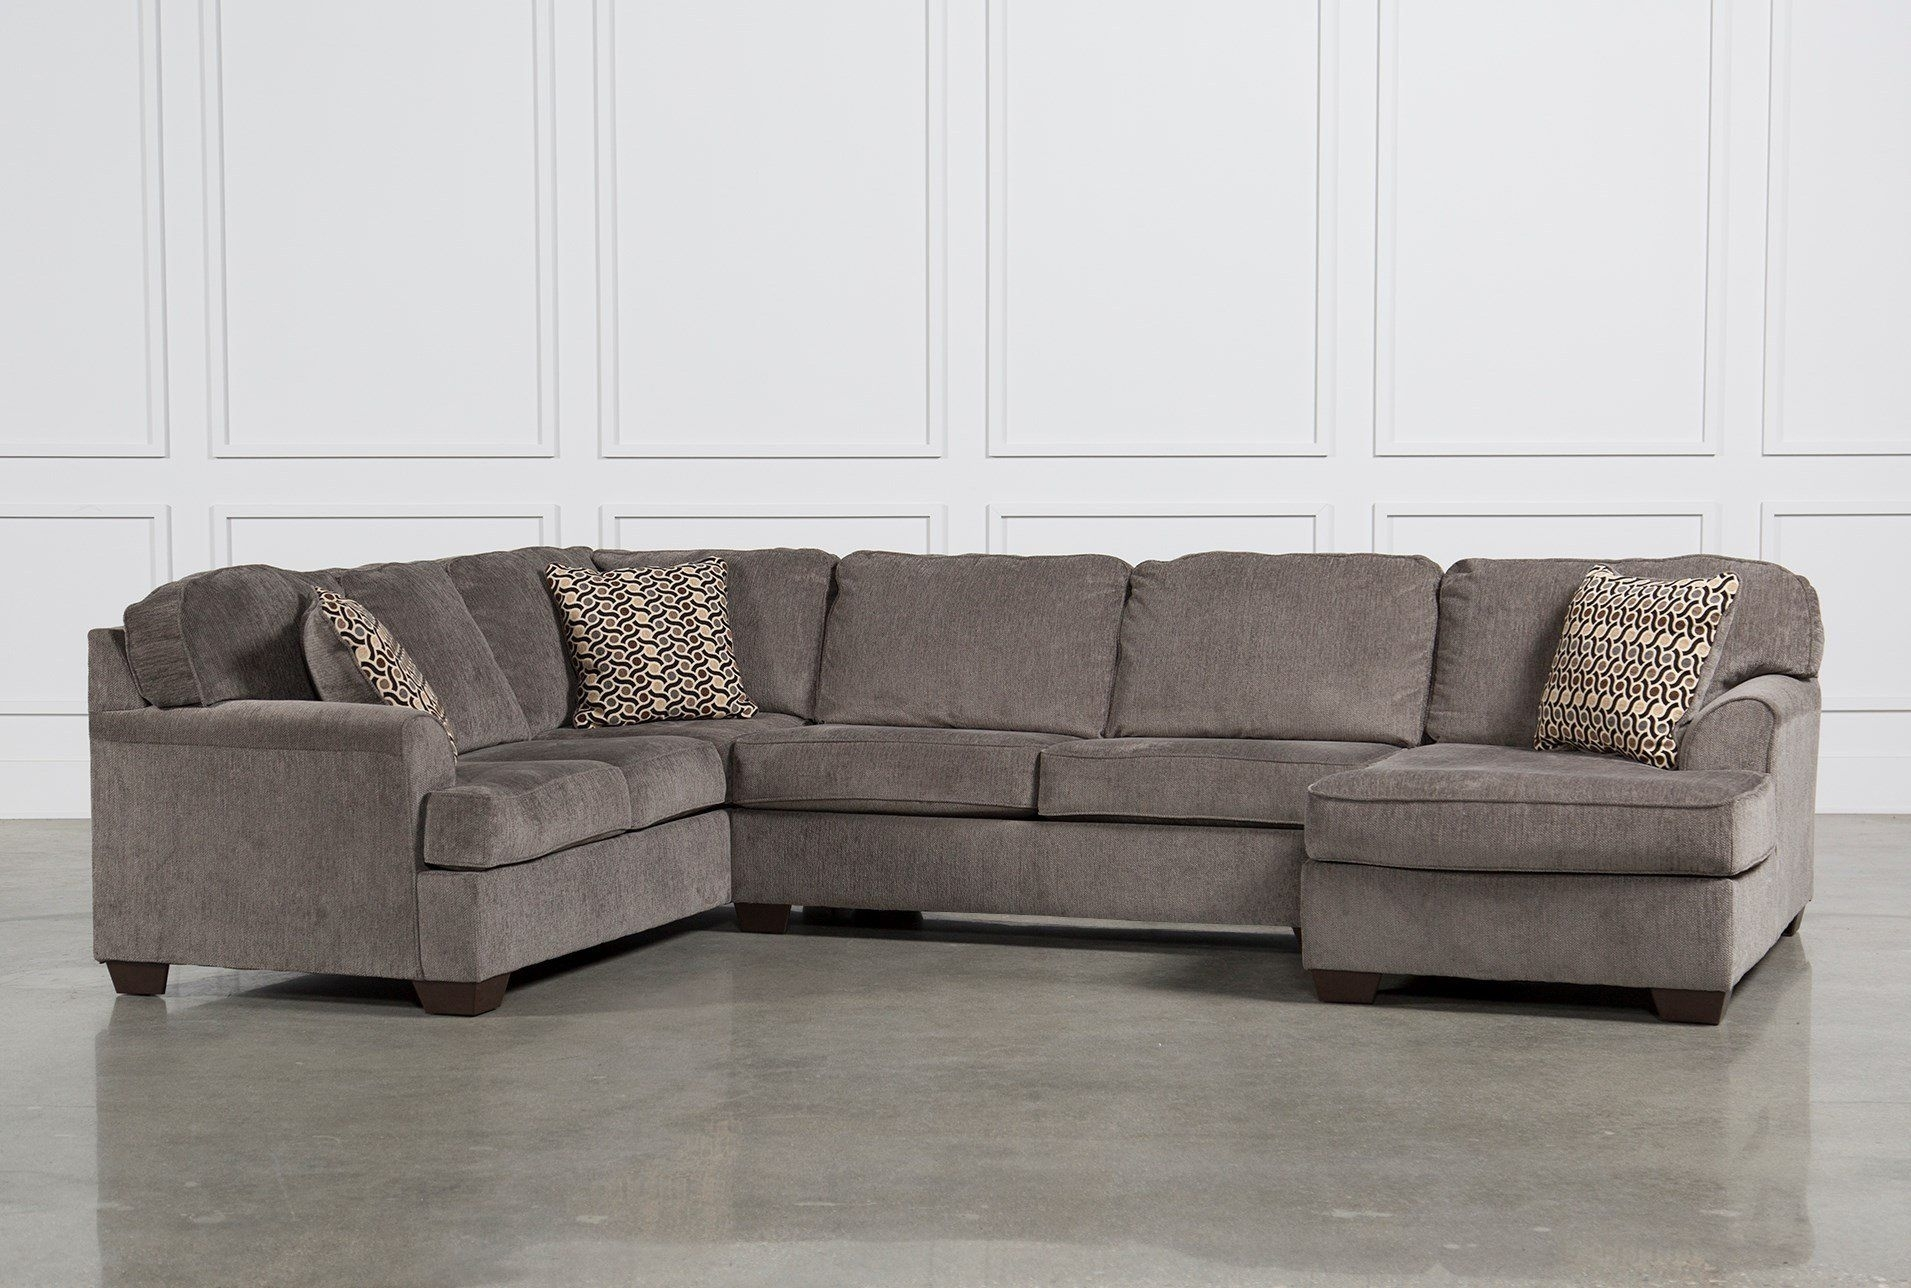 Loric Smoke 3 Piece Sectional W/raf Chaise | Upholstery, Pillows And Pertaining To Malbry Point 3 Piece Sectionals With Raf Chaise (Image 21 of 25)